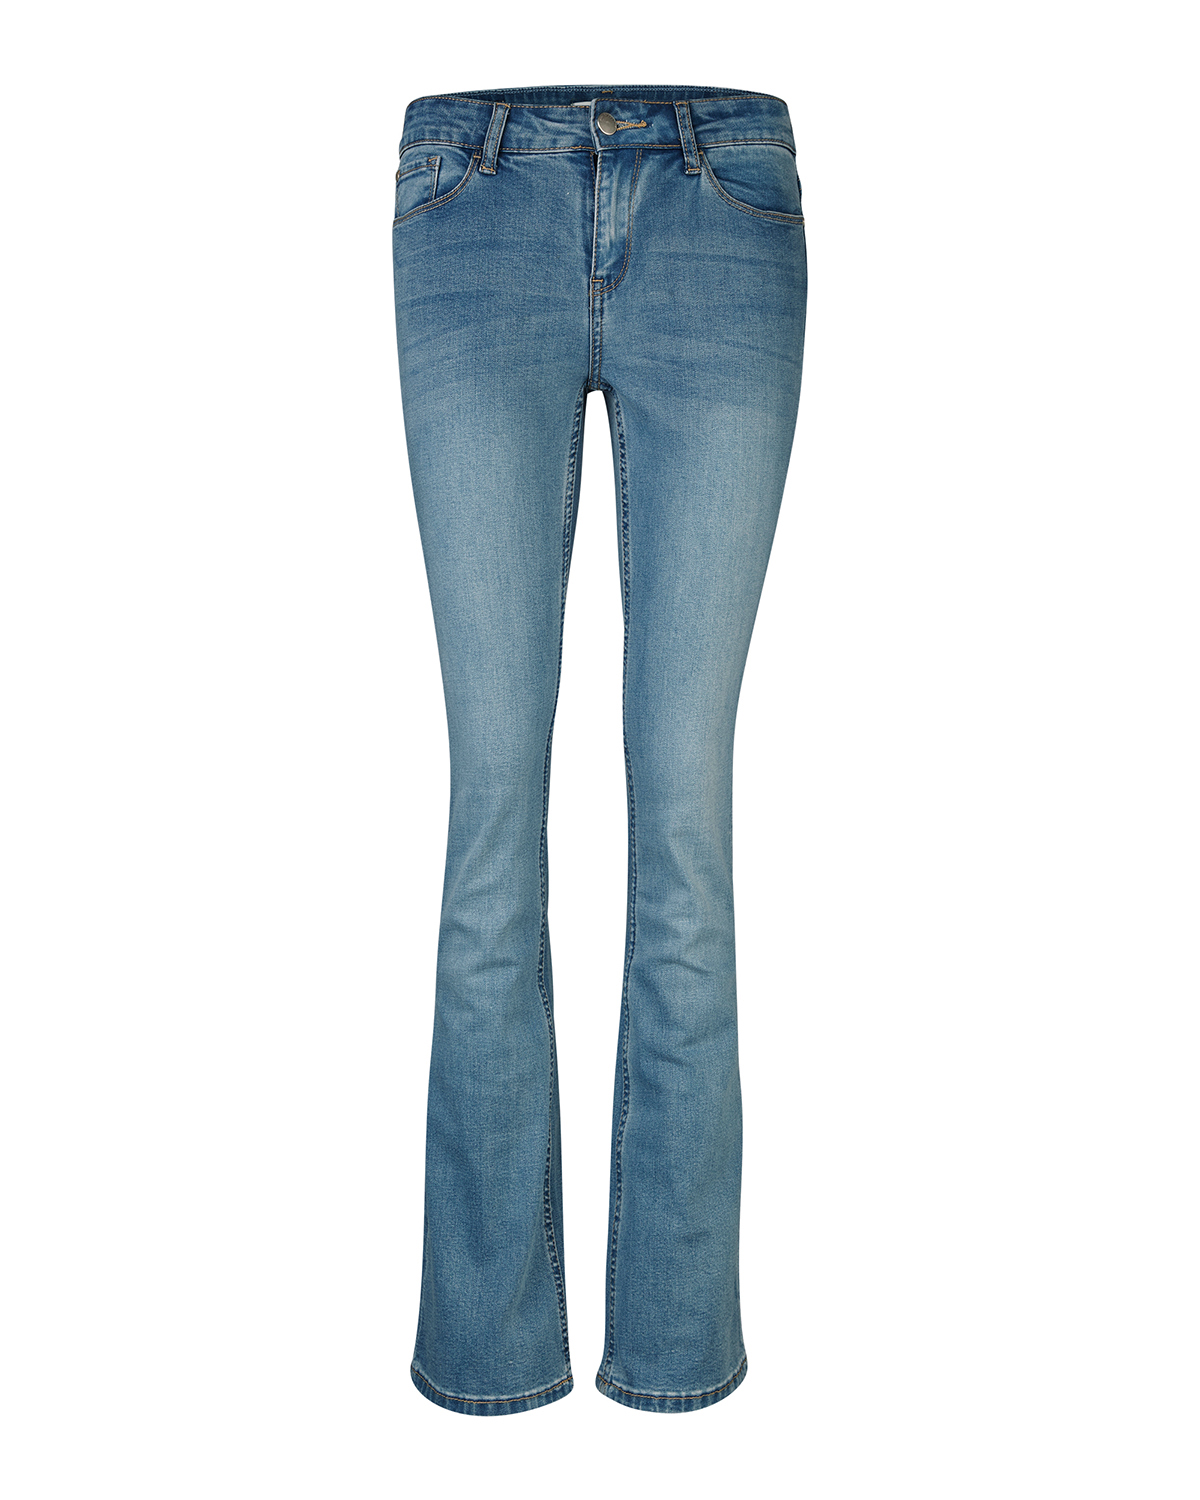 Dames skinny fit flare jeans